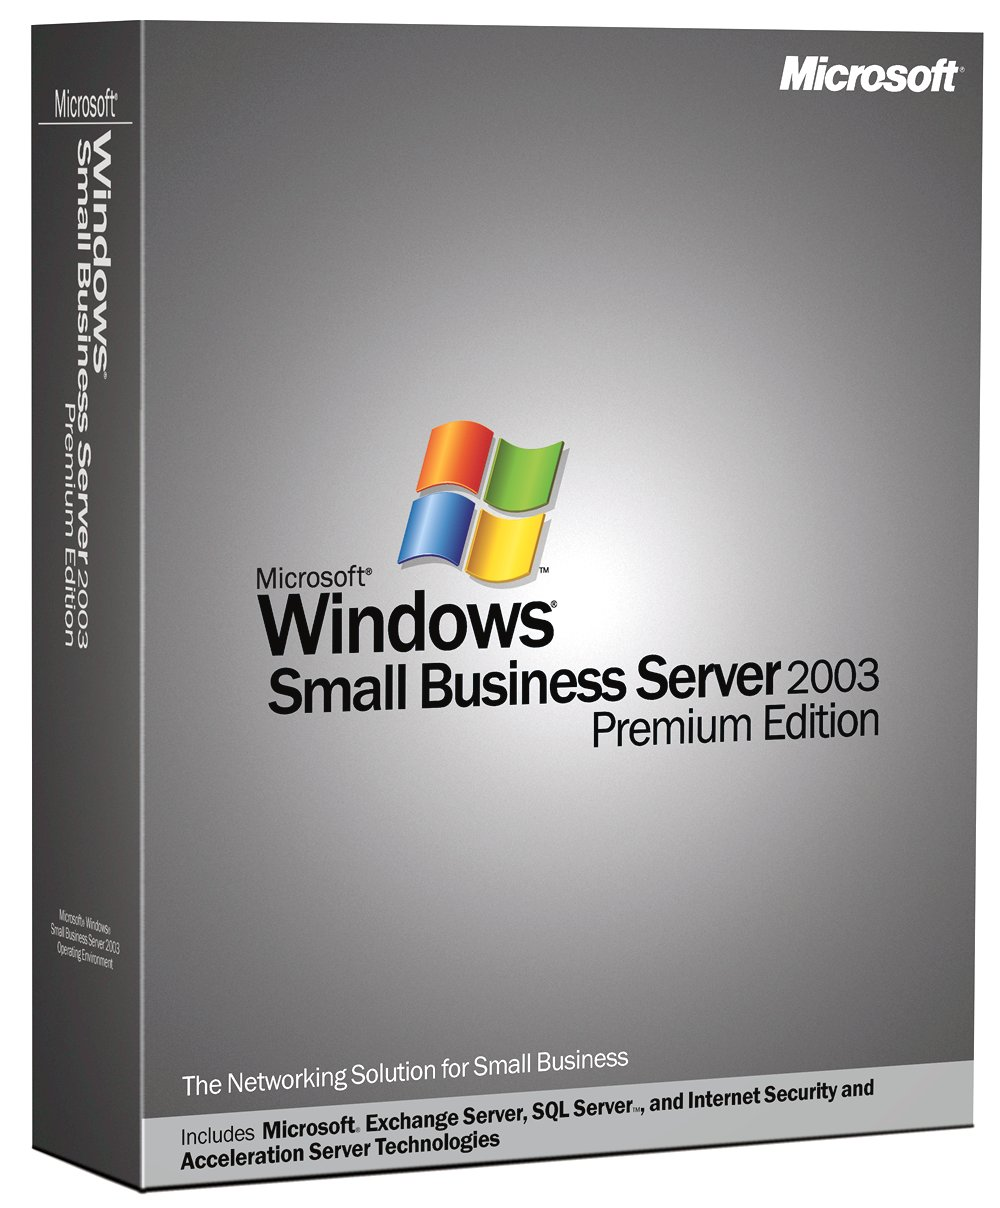 New microsoft windows small business server 2003 premium for New windows products